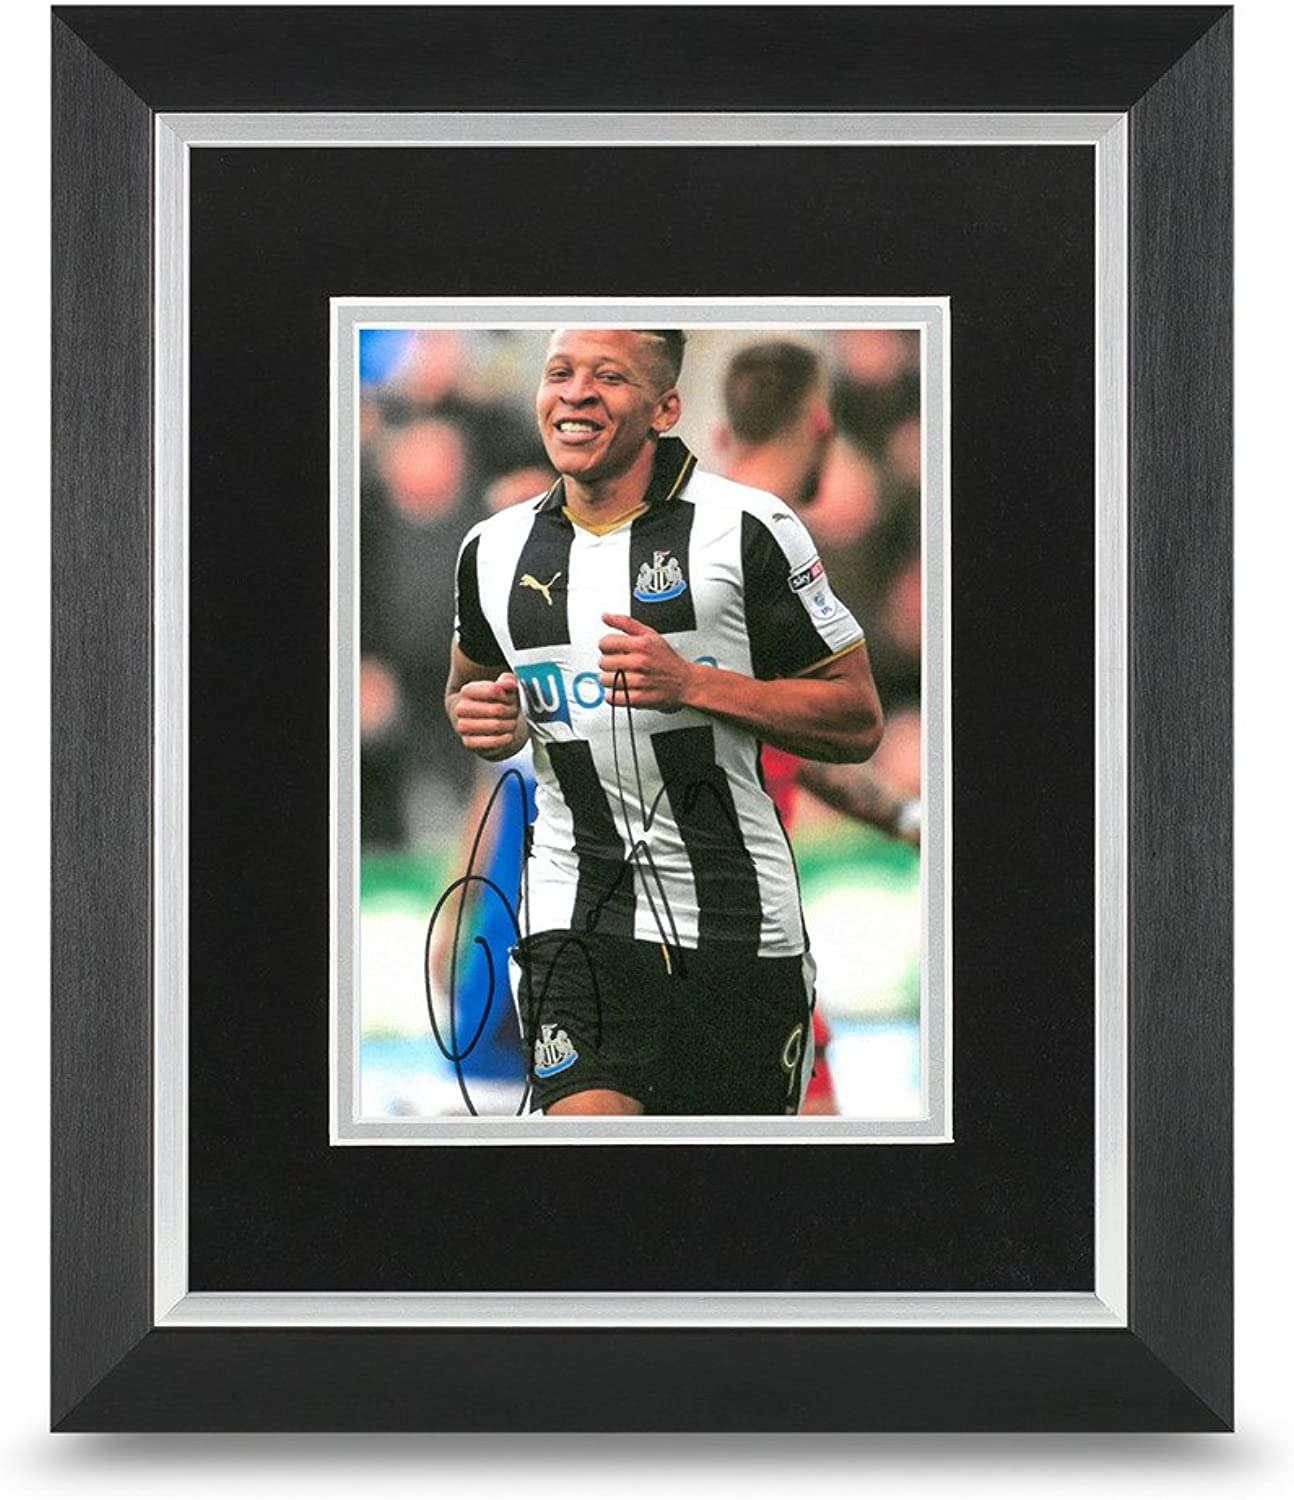 Dwight Gayle Signed 10x8 Photo Display Framed Newcastle Autograph Memorabillia